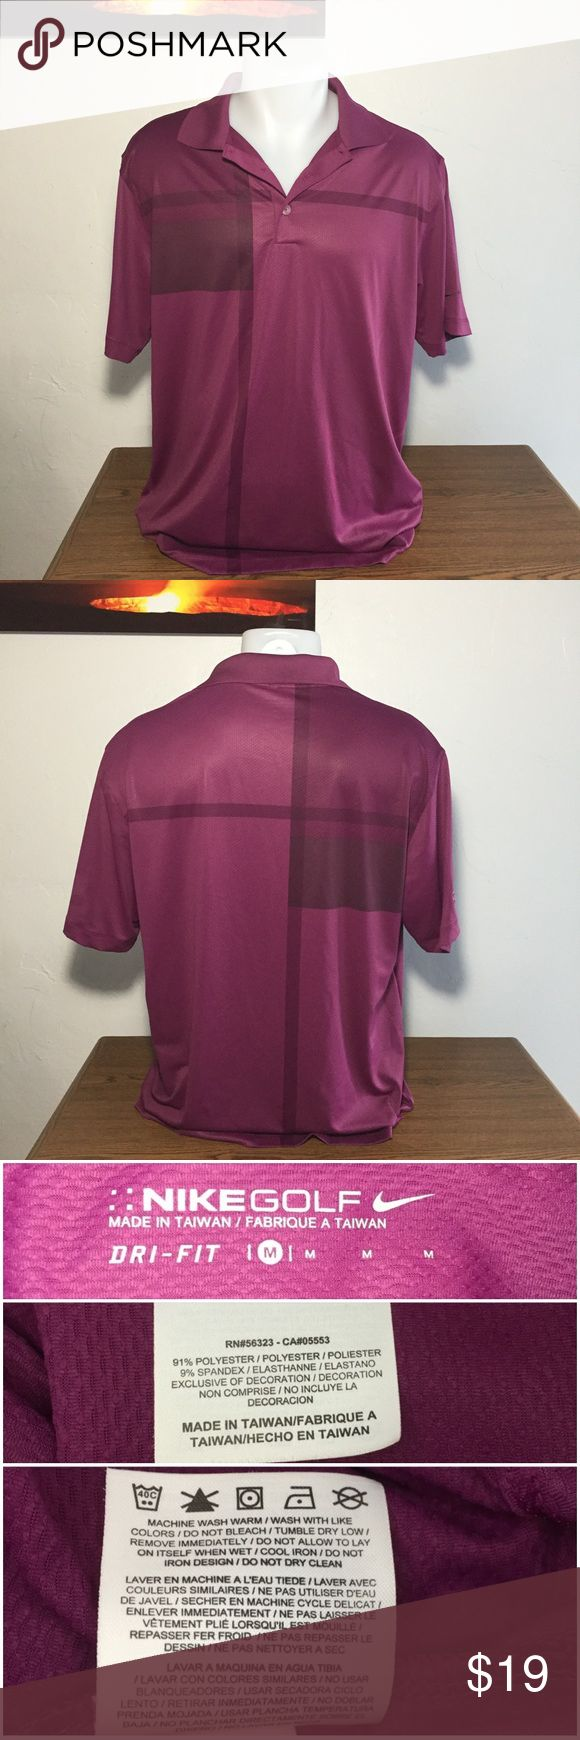 Men's - Nike Golf Dri-Fit Purple Polo Shirt This shirt is in good condition. Different shades of purple with stripes and color blocks. Embroidered Nike Swoosh on the left sleeve and Boundary Oak on the right sleeve. There is discoloration on the left side of the shirt (as seen in pics). The material is thin, smooth, and lightly textured.  Approximate measurements: Total length -  Armpit to armpit -  Sleeve length -   🚫Sorry, no trades or modeling🚫  M1110 Nike Shirts Polos